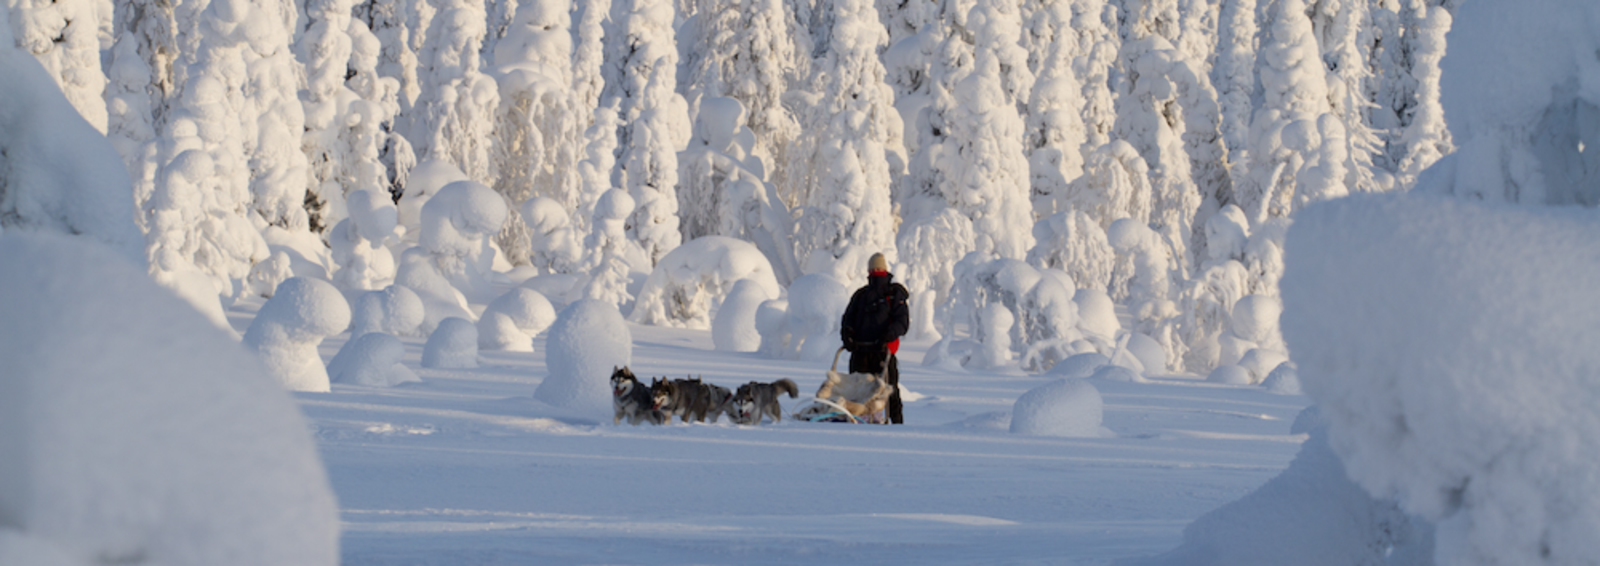 Dogsledding through snow-capped trees, Riisitunturi National Park, Finland (photo by Erkki Ollila)